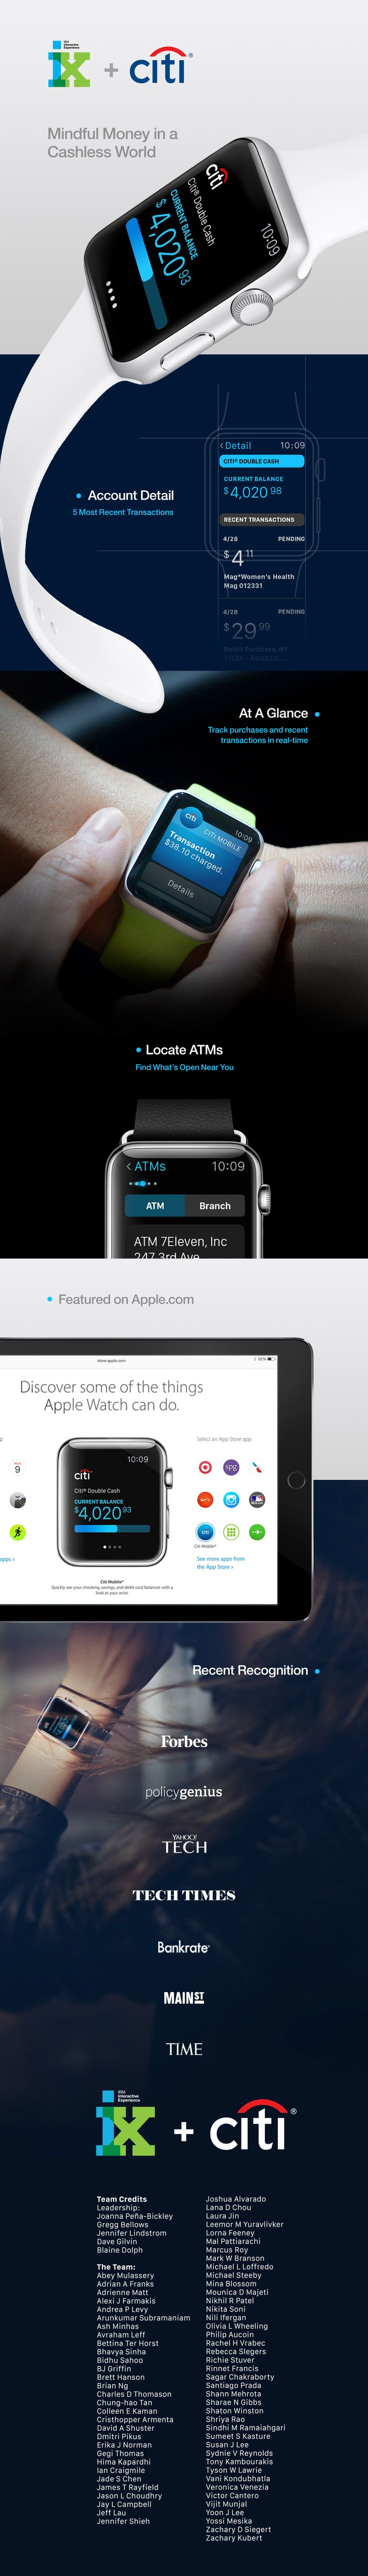 Citi Mobile Lite for Apple Watch on Behance